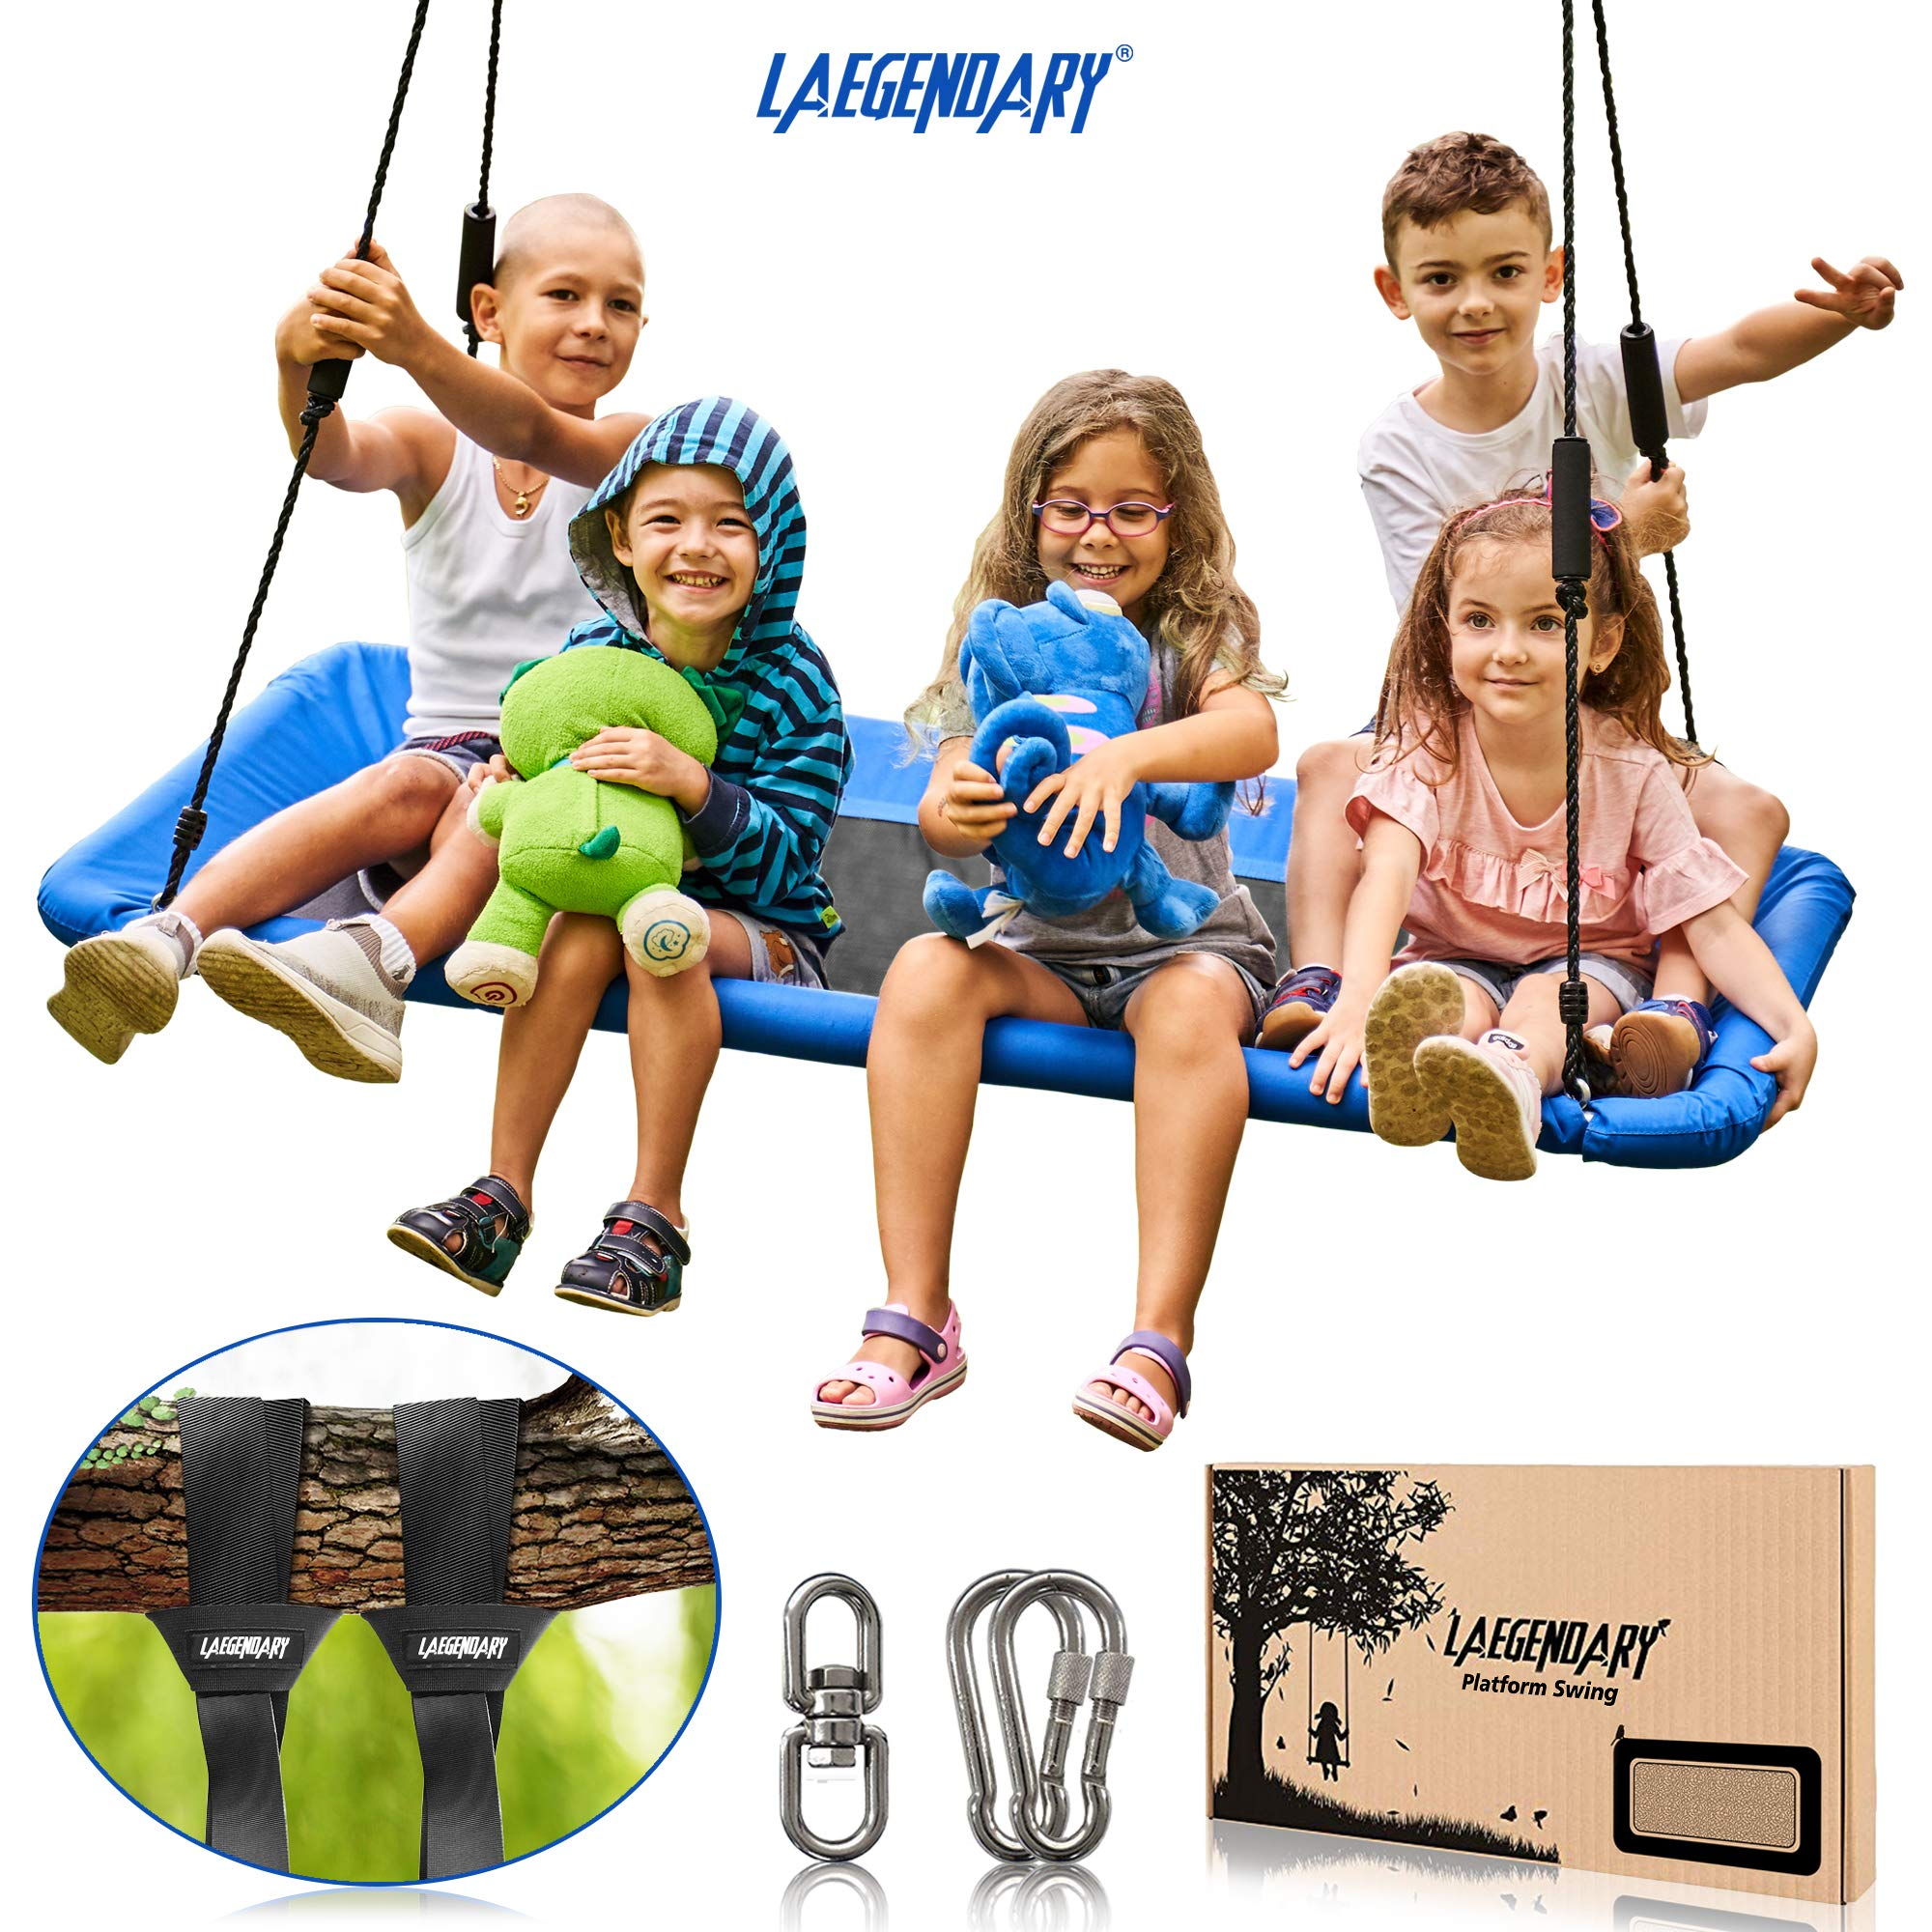 60 Inch Platform Tree Swing for Kids and Adults - Giant Flying Outdoor Indoor Saucer Hammock - Surf Tire Swingset Accessories Toys - 2 Tree Straps, 2 Carabiners, 1 Swivel - 350 Pounds Yard Swings Set by LÆGENDARY